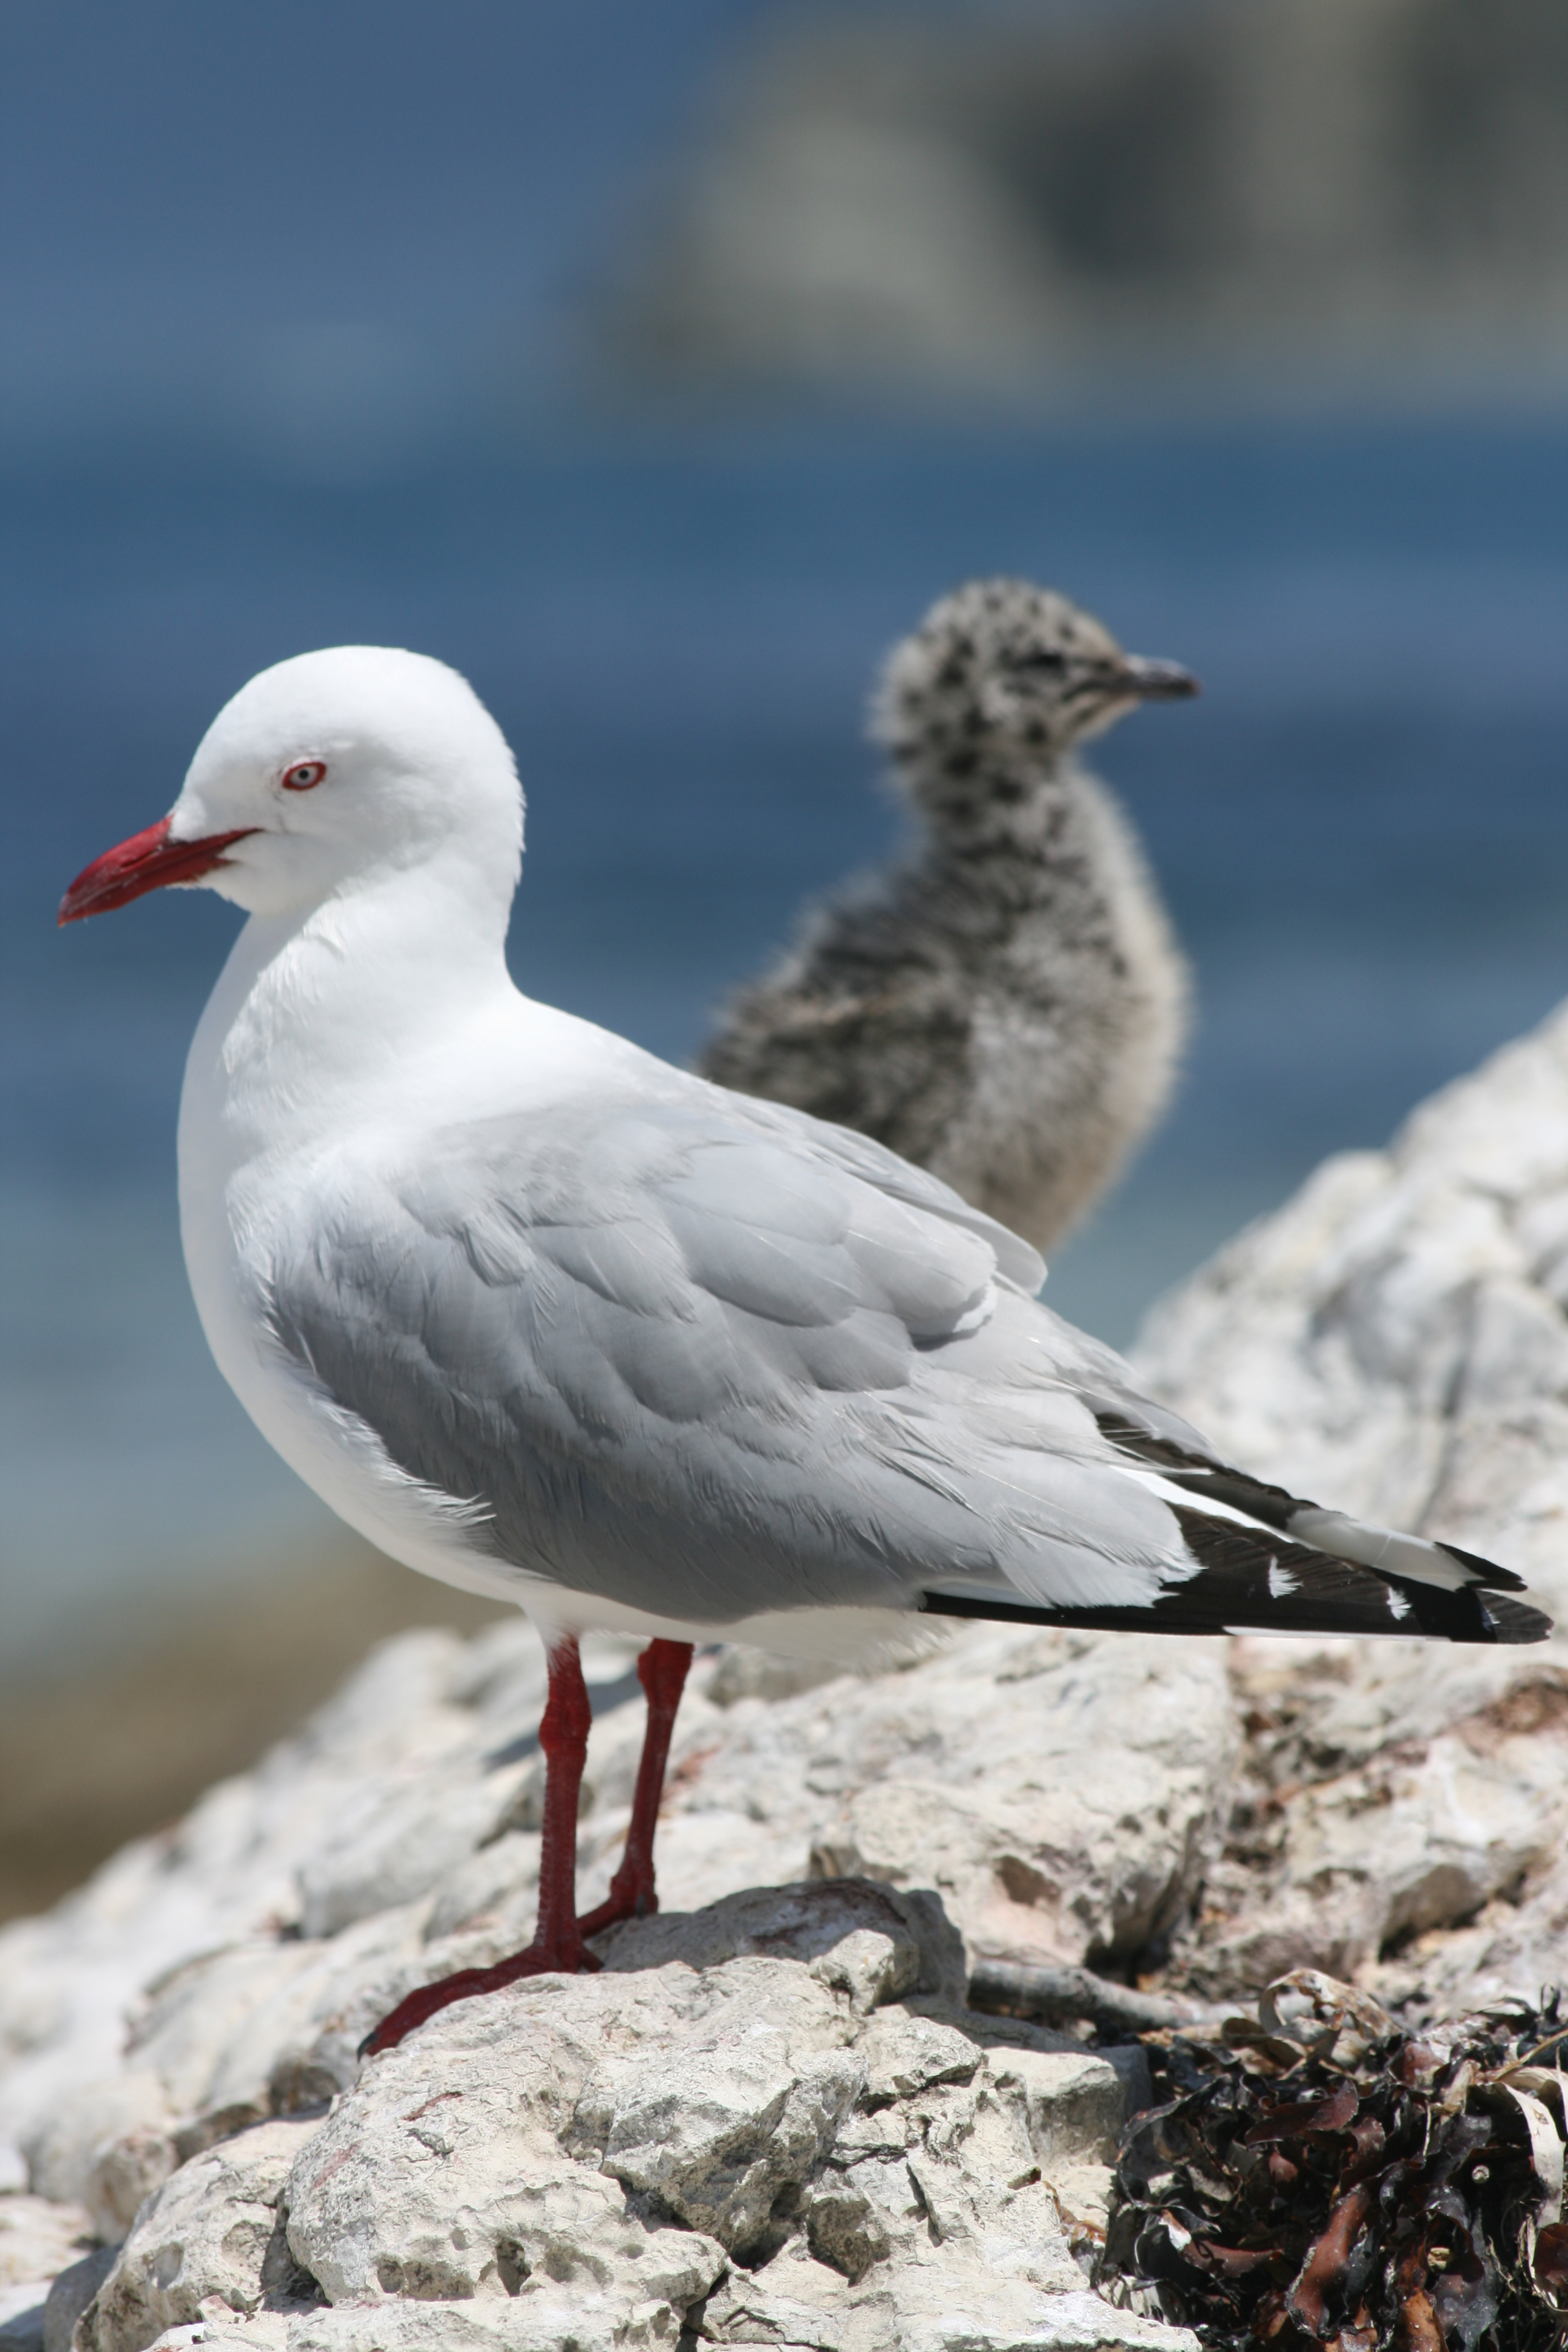 Adult red-billed gull (Larus novaehollandiae scopulinus) with chick. The birds are part of a 54 year study in the Kaikoura Peninsula, New Zealand. Photo credit: D A Mills